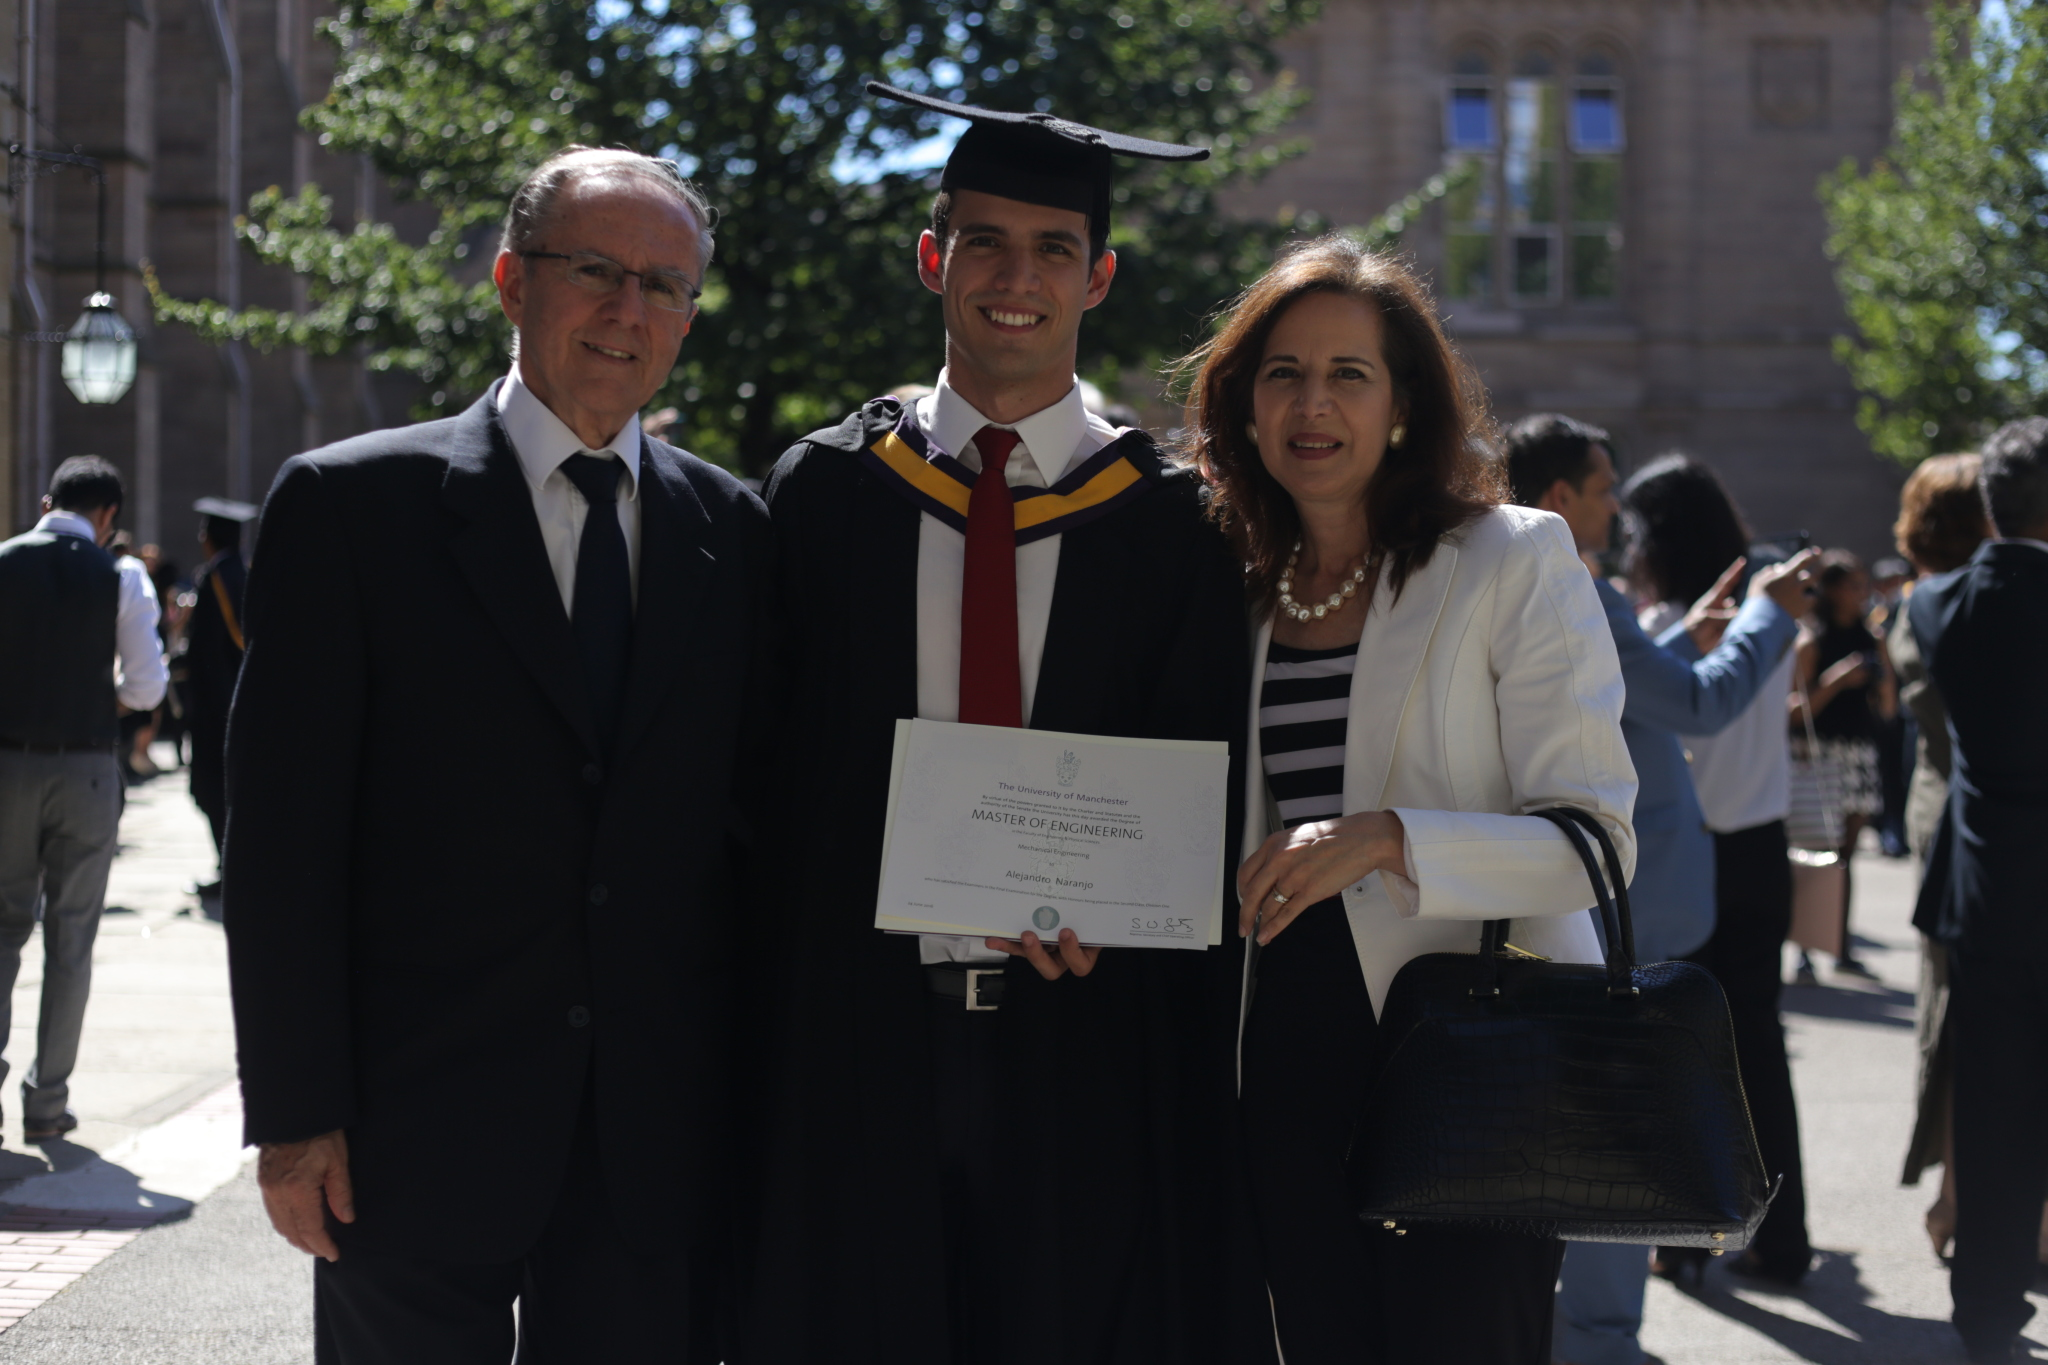 Alejandro Naranjo with his proud parents graduating from Manchester